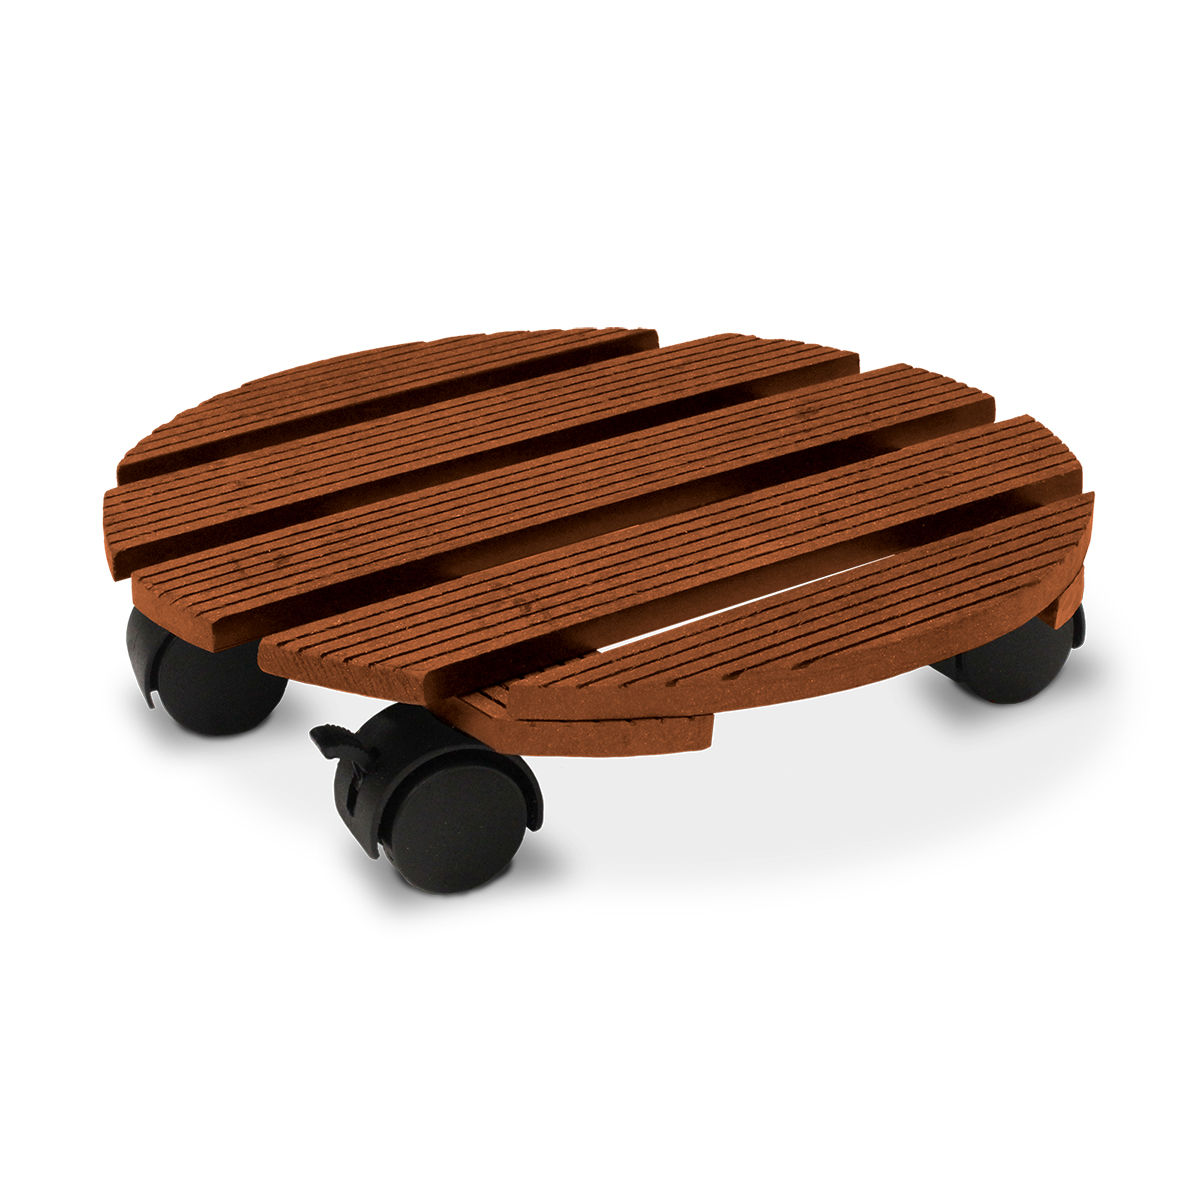 18531 Wood-Poly Pot Trolley Round Merbau